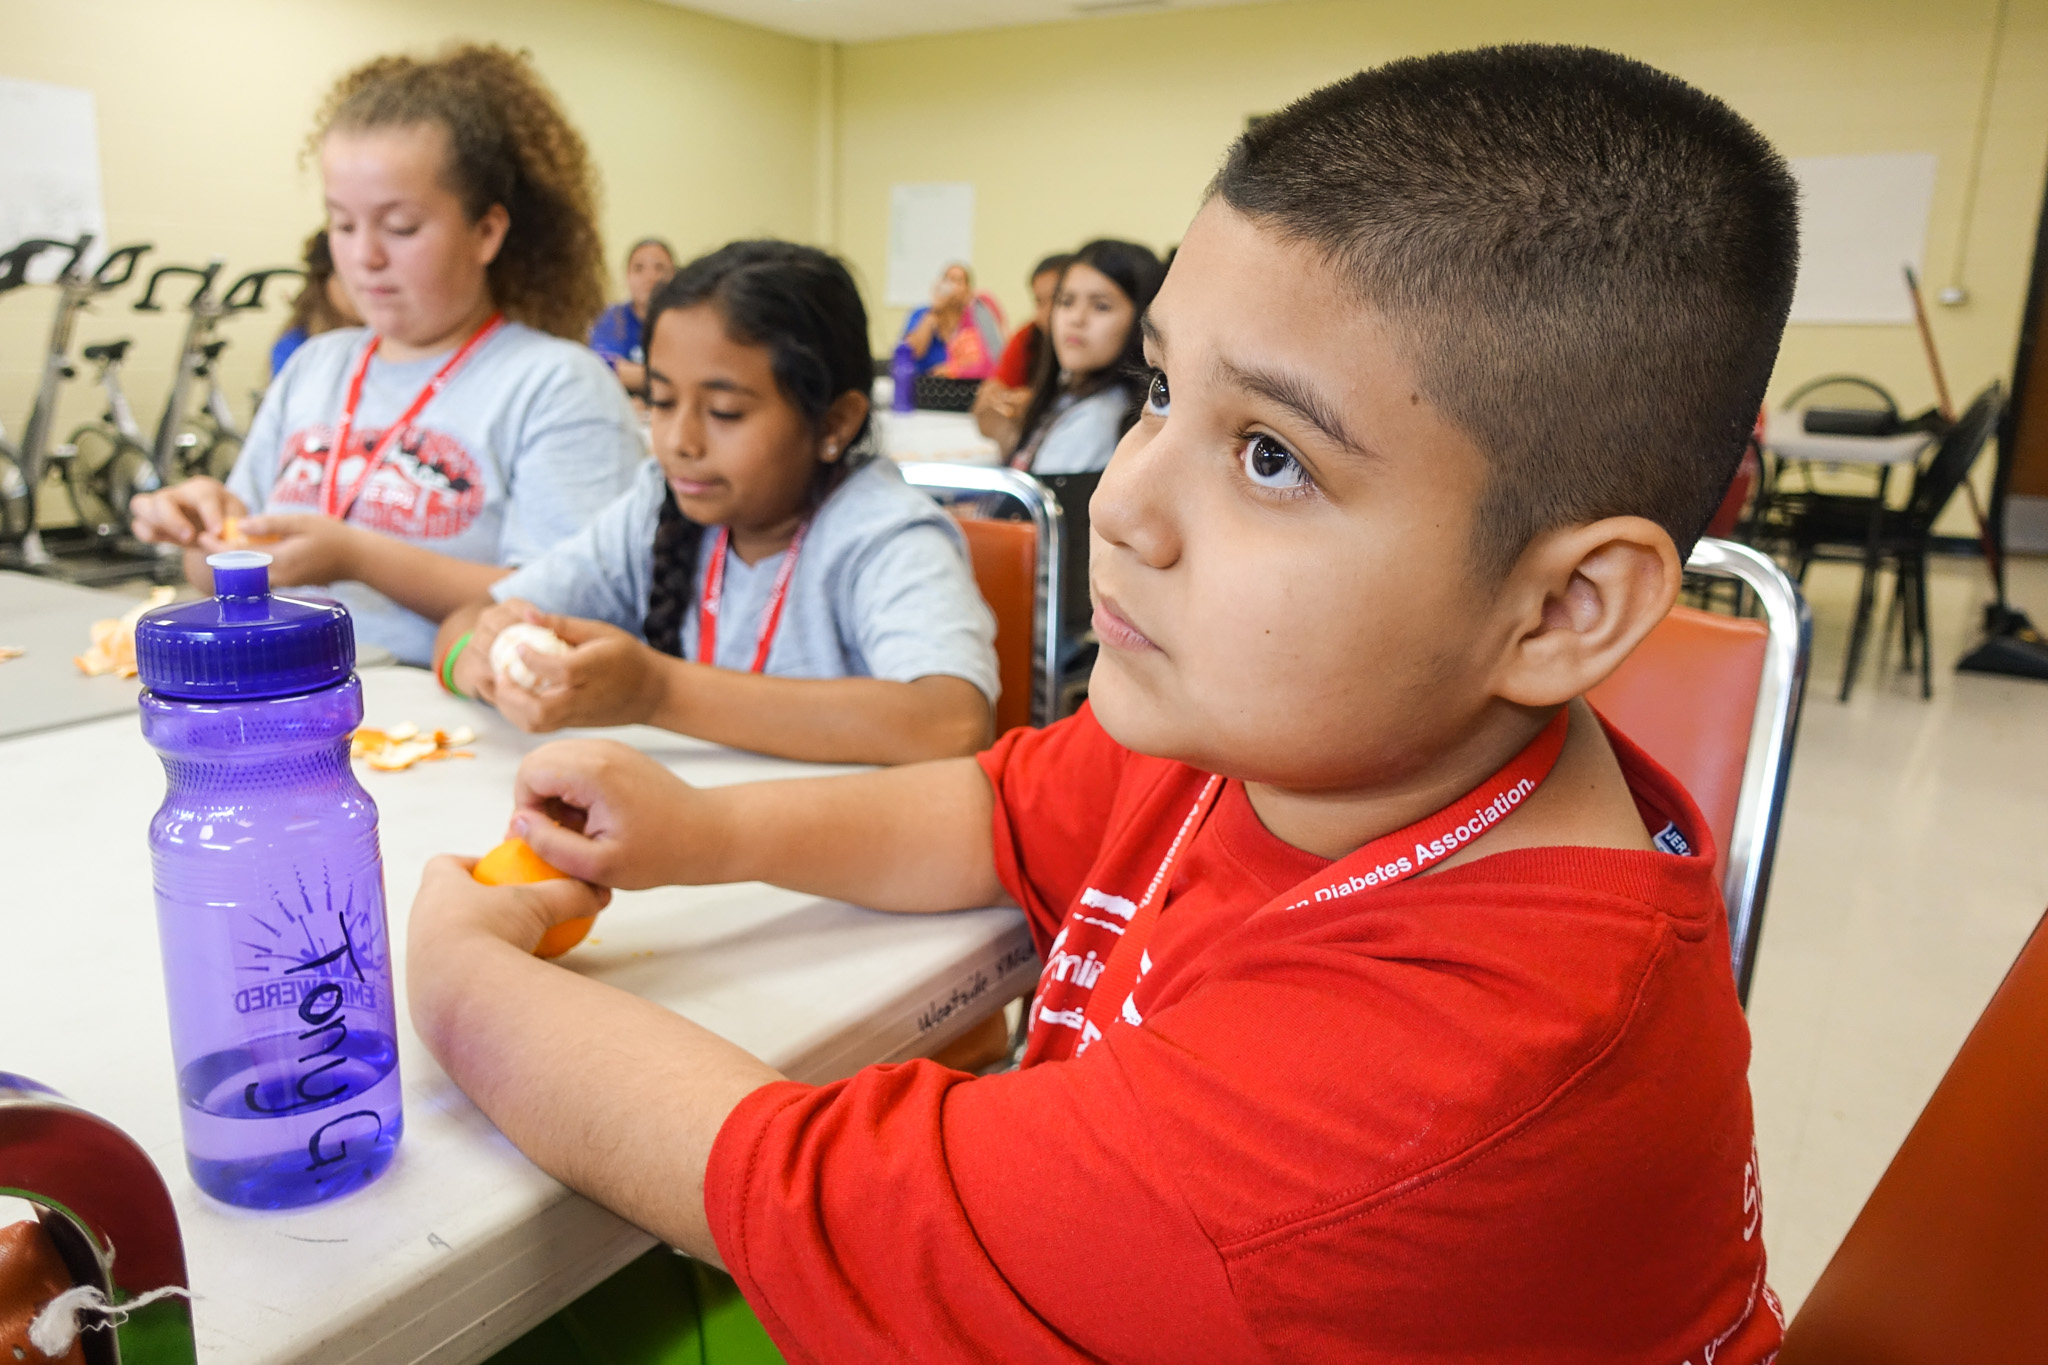 Campers peel oranges slowly during a nutrition education mindful eating class at American Diabetes Association camp.